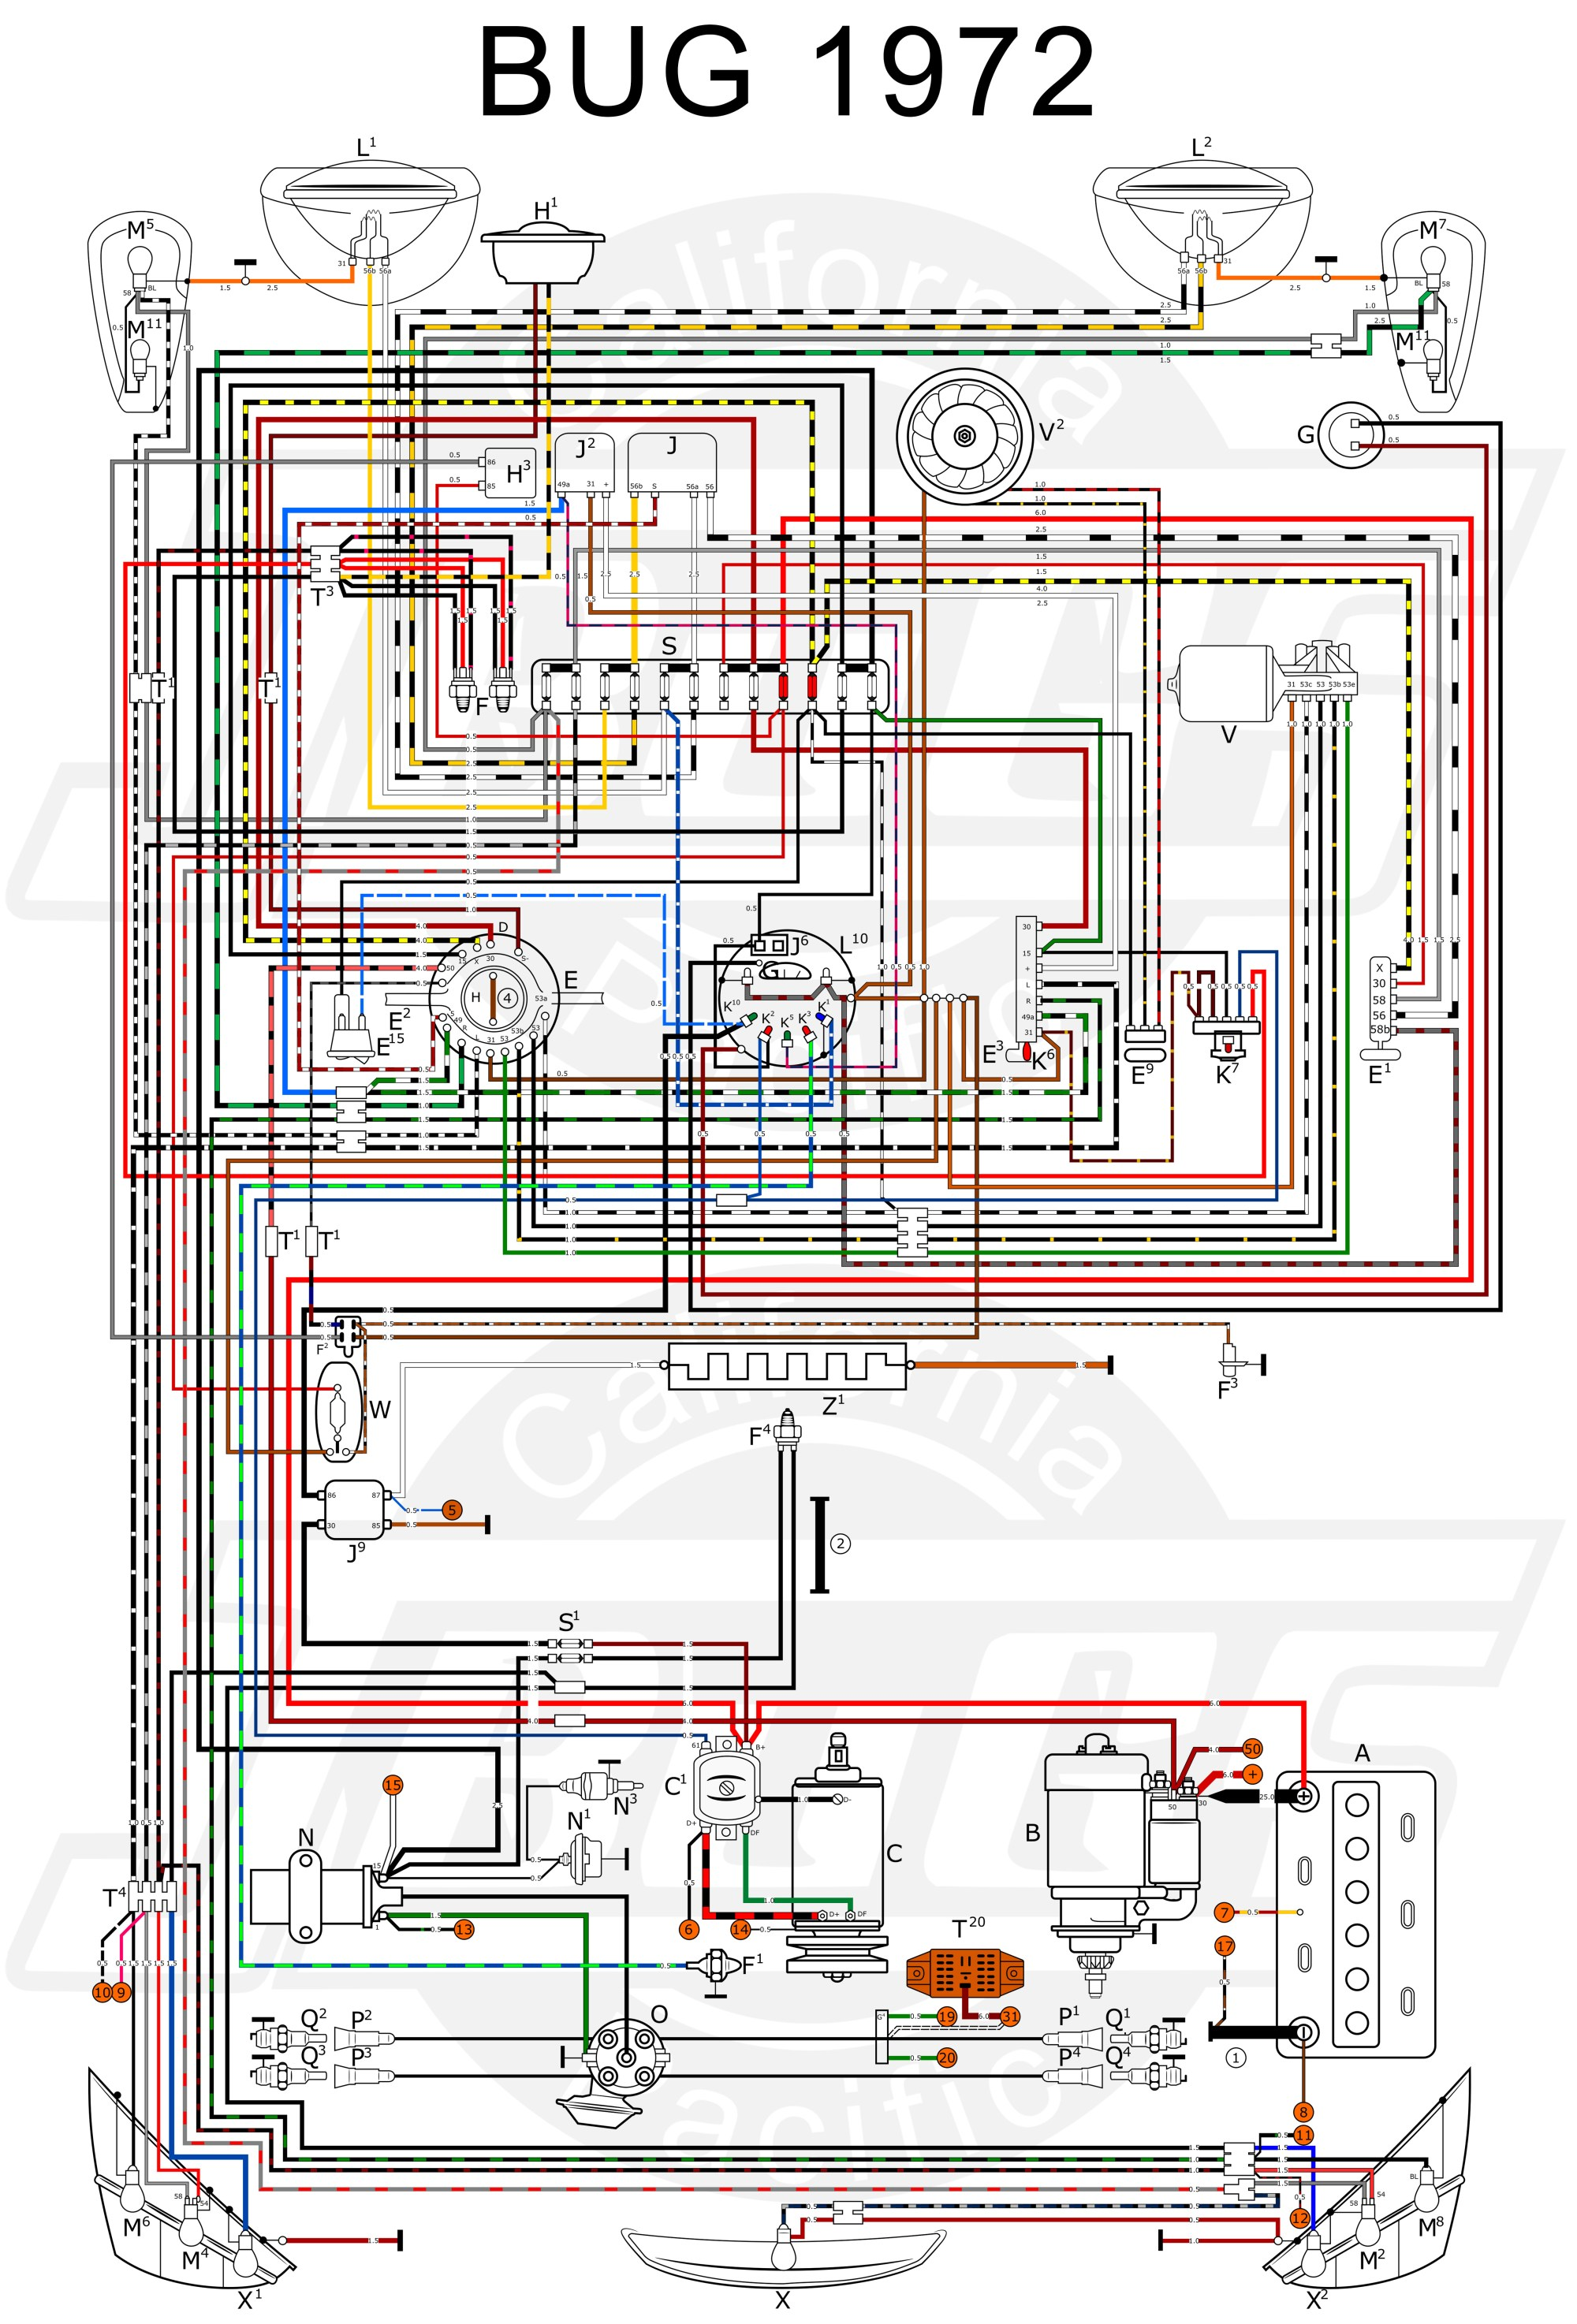 hight resolution of vw beetle 6 volt generator wiring diagram wiring library vw beetle 6 volt generator wiring diagram